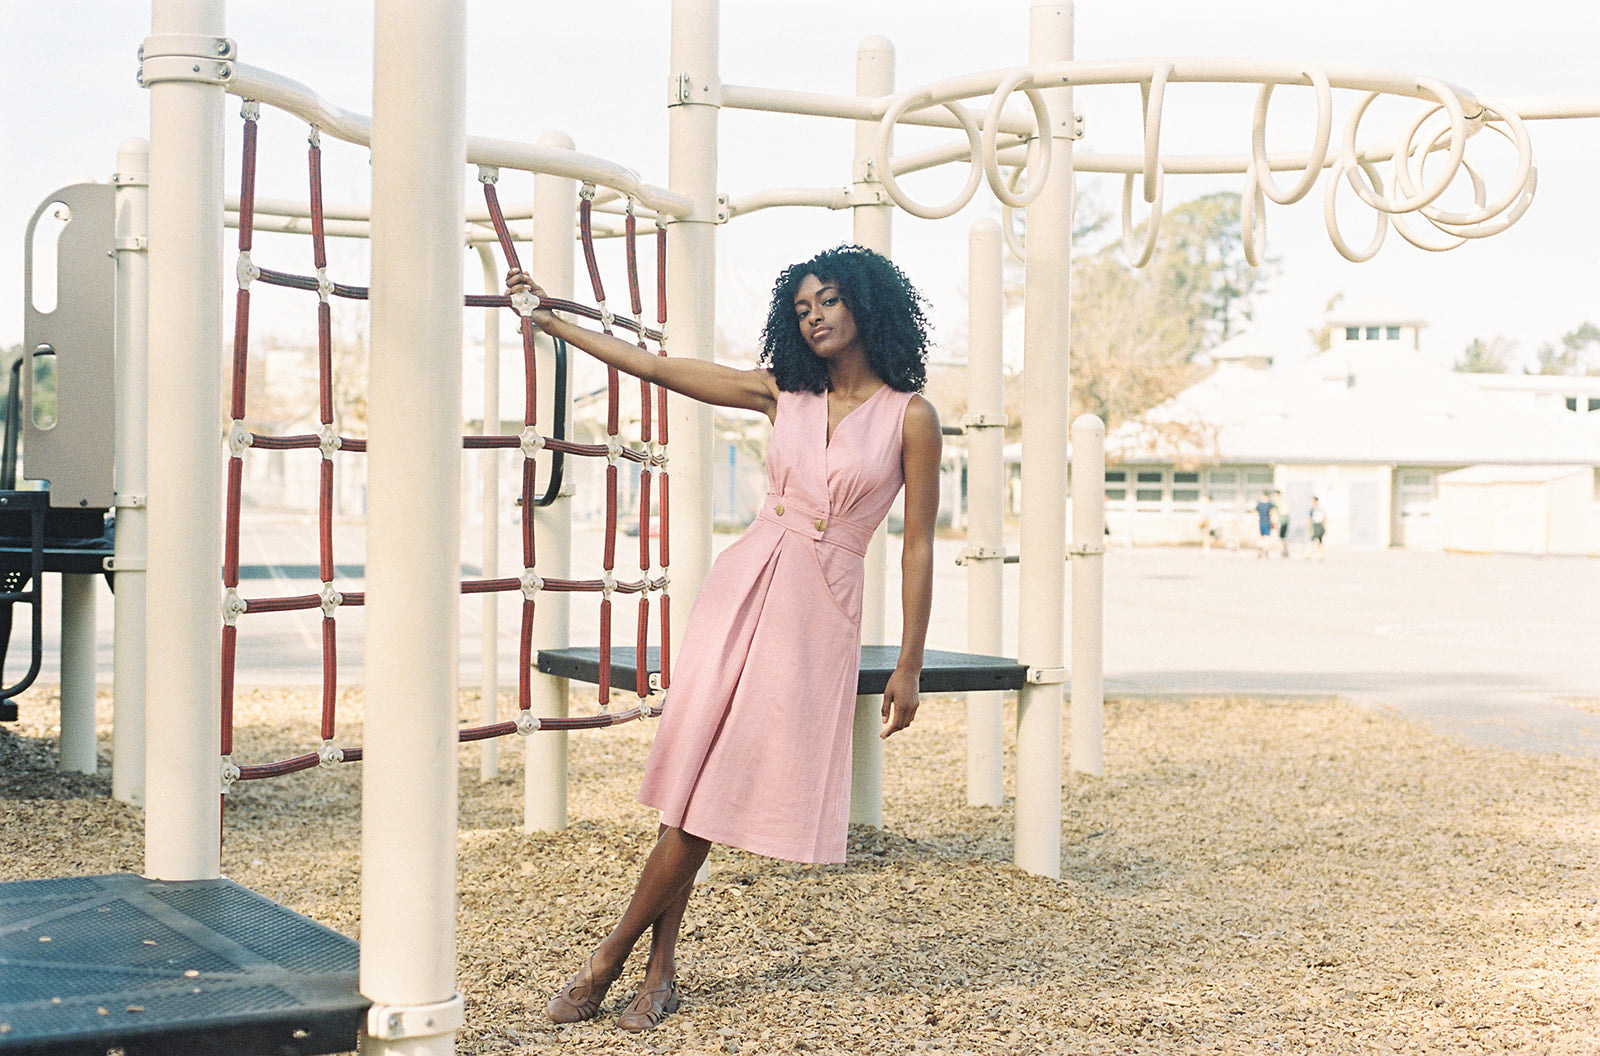 pink dress on a play ground worn by black model